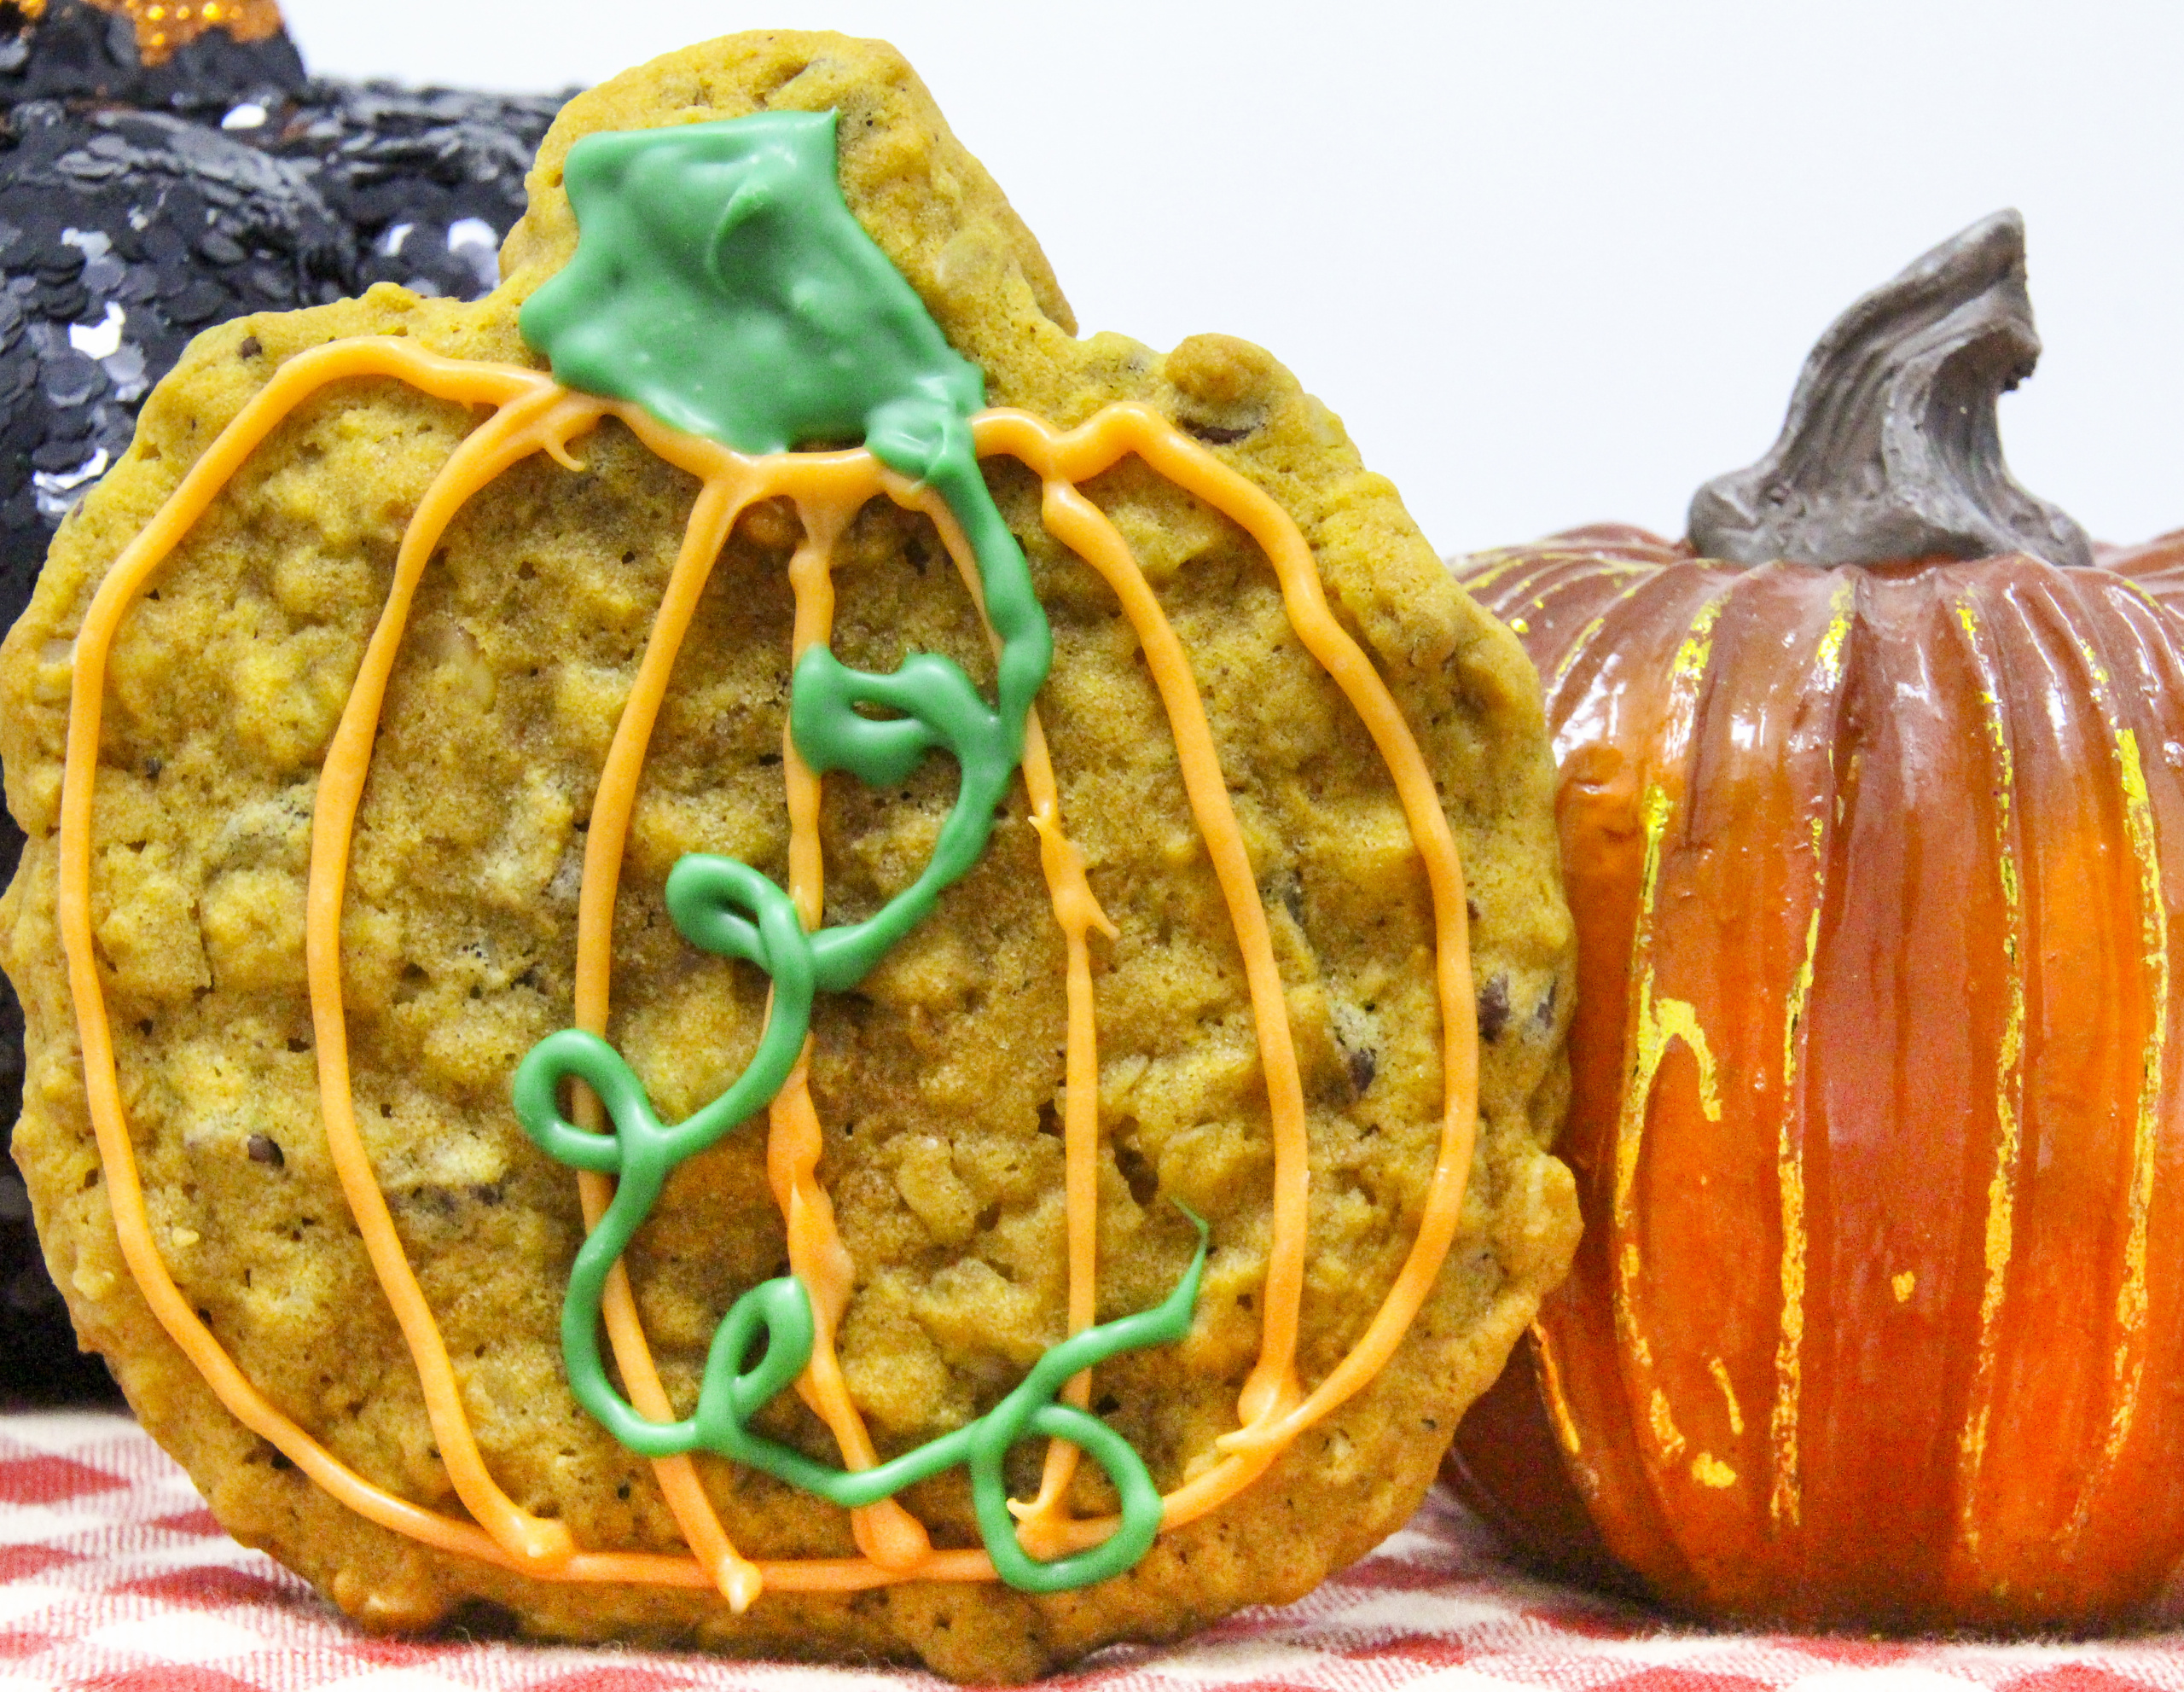 Full of flavor, these Gluten-Free Pumpkin cookies are pumpkiny and spicy, chocolately and cakey, yet moist with a crunch from the walnuts added. Recipe shared with permission granted by Barbara Ross, author of Halloween Party Murder.